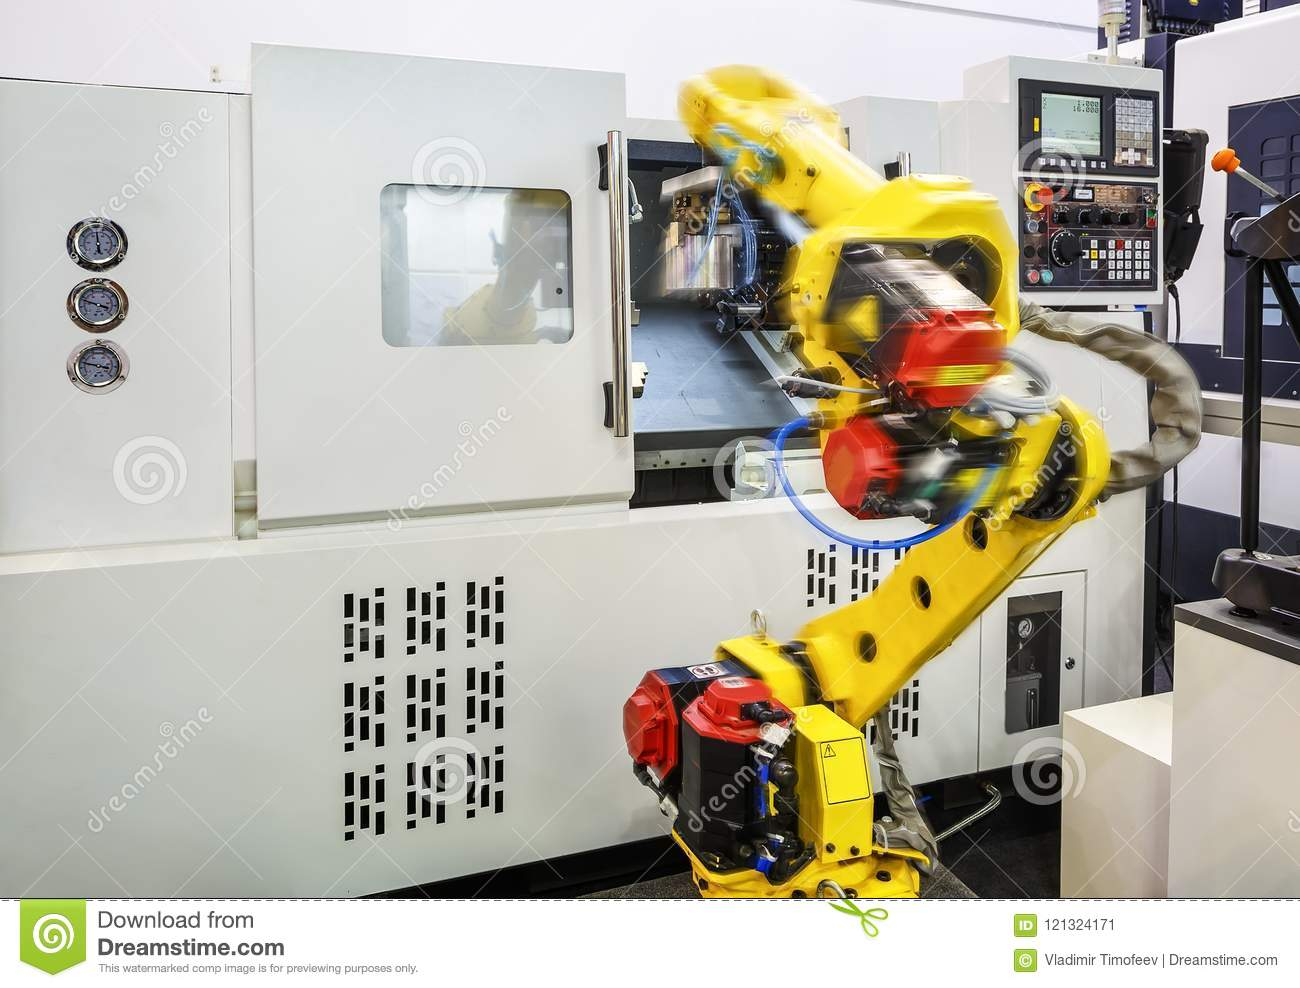 Part Of The Cnc Milling Machine With Control Panel And Robot In Motion Blur  Moves A Part From The CNC On The Conveyor Stock Image - Image of machining,  intelligence: 121324171